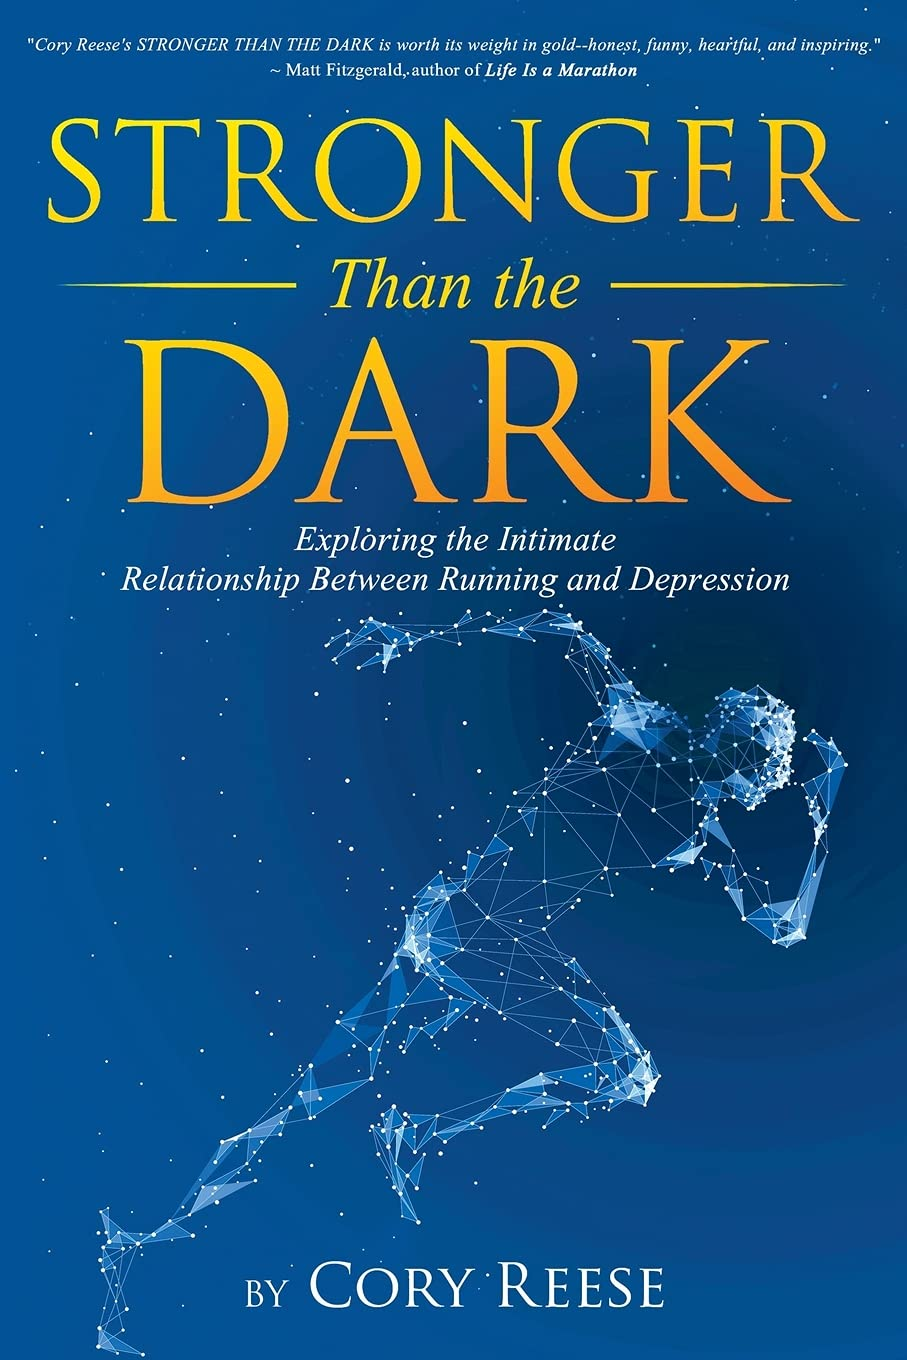 Stronger Than the Dark: Exploring the Intimate Relationship Between Running and Depression